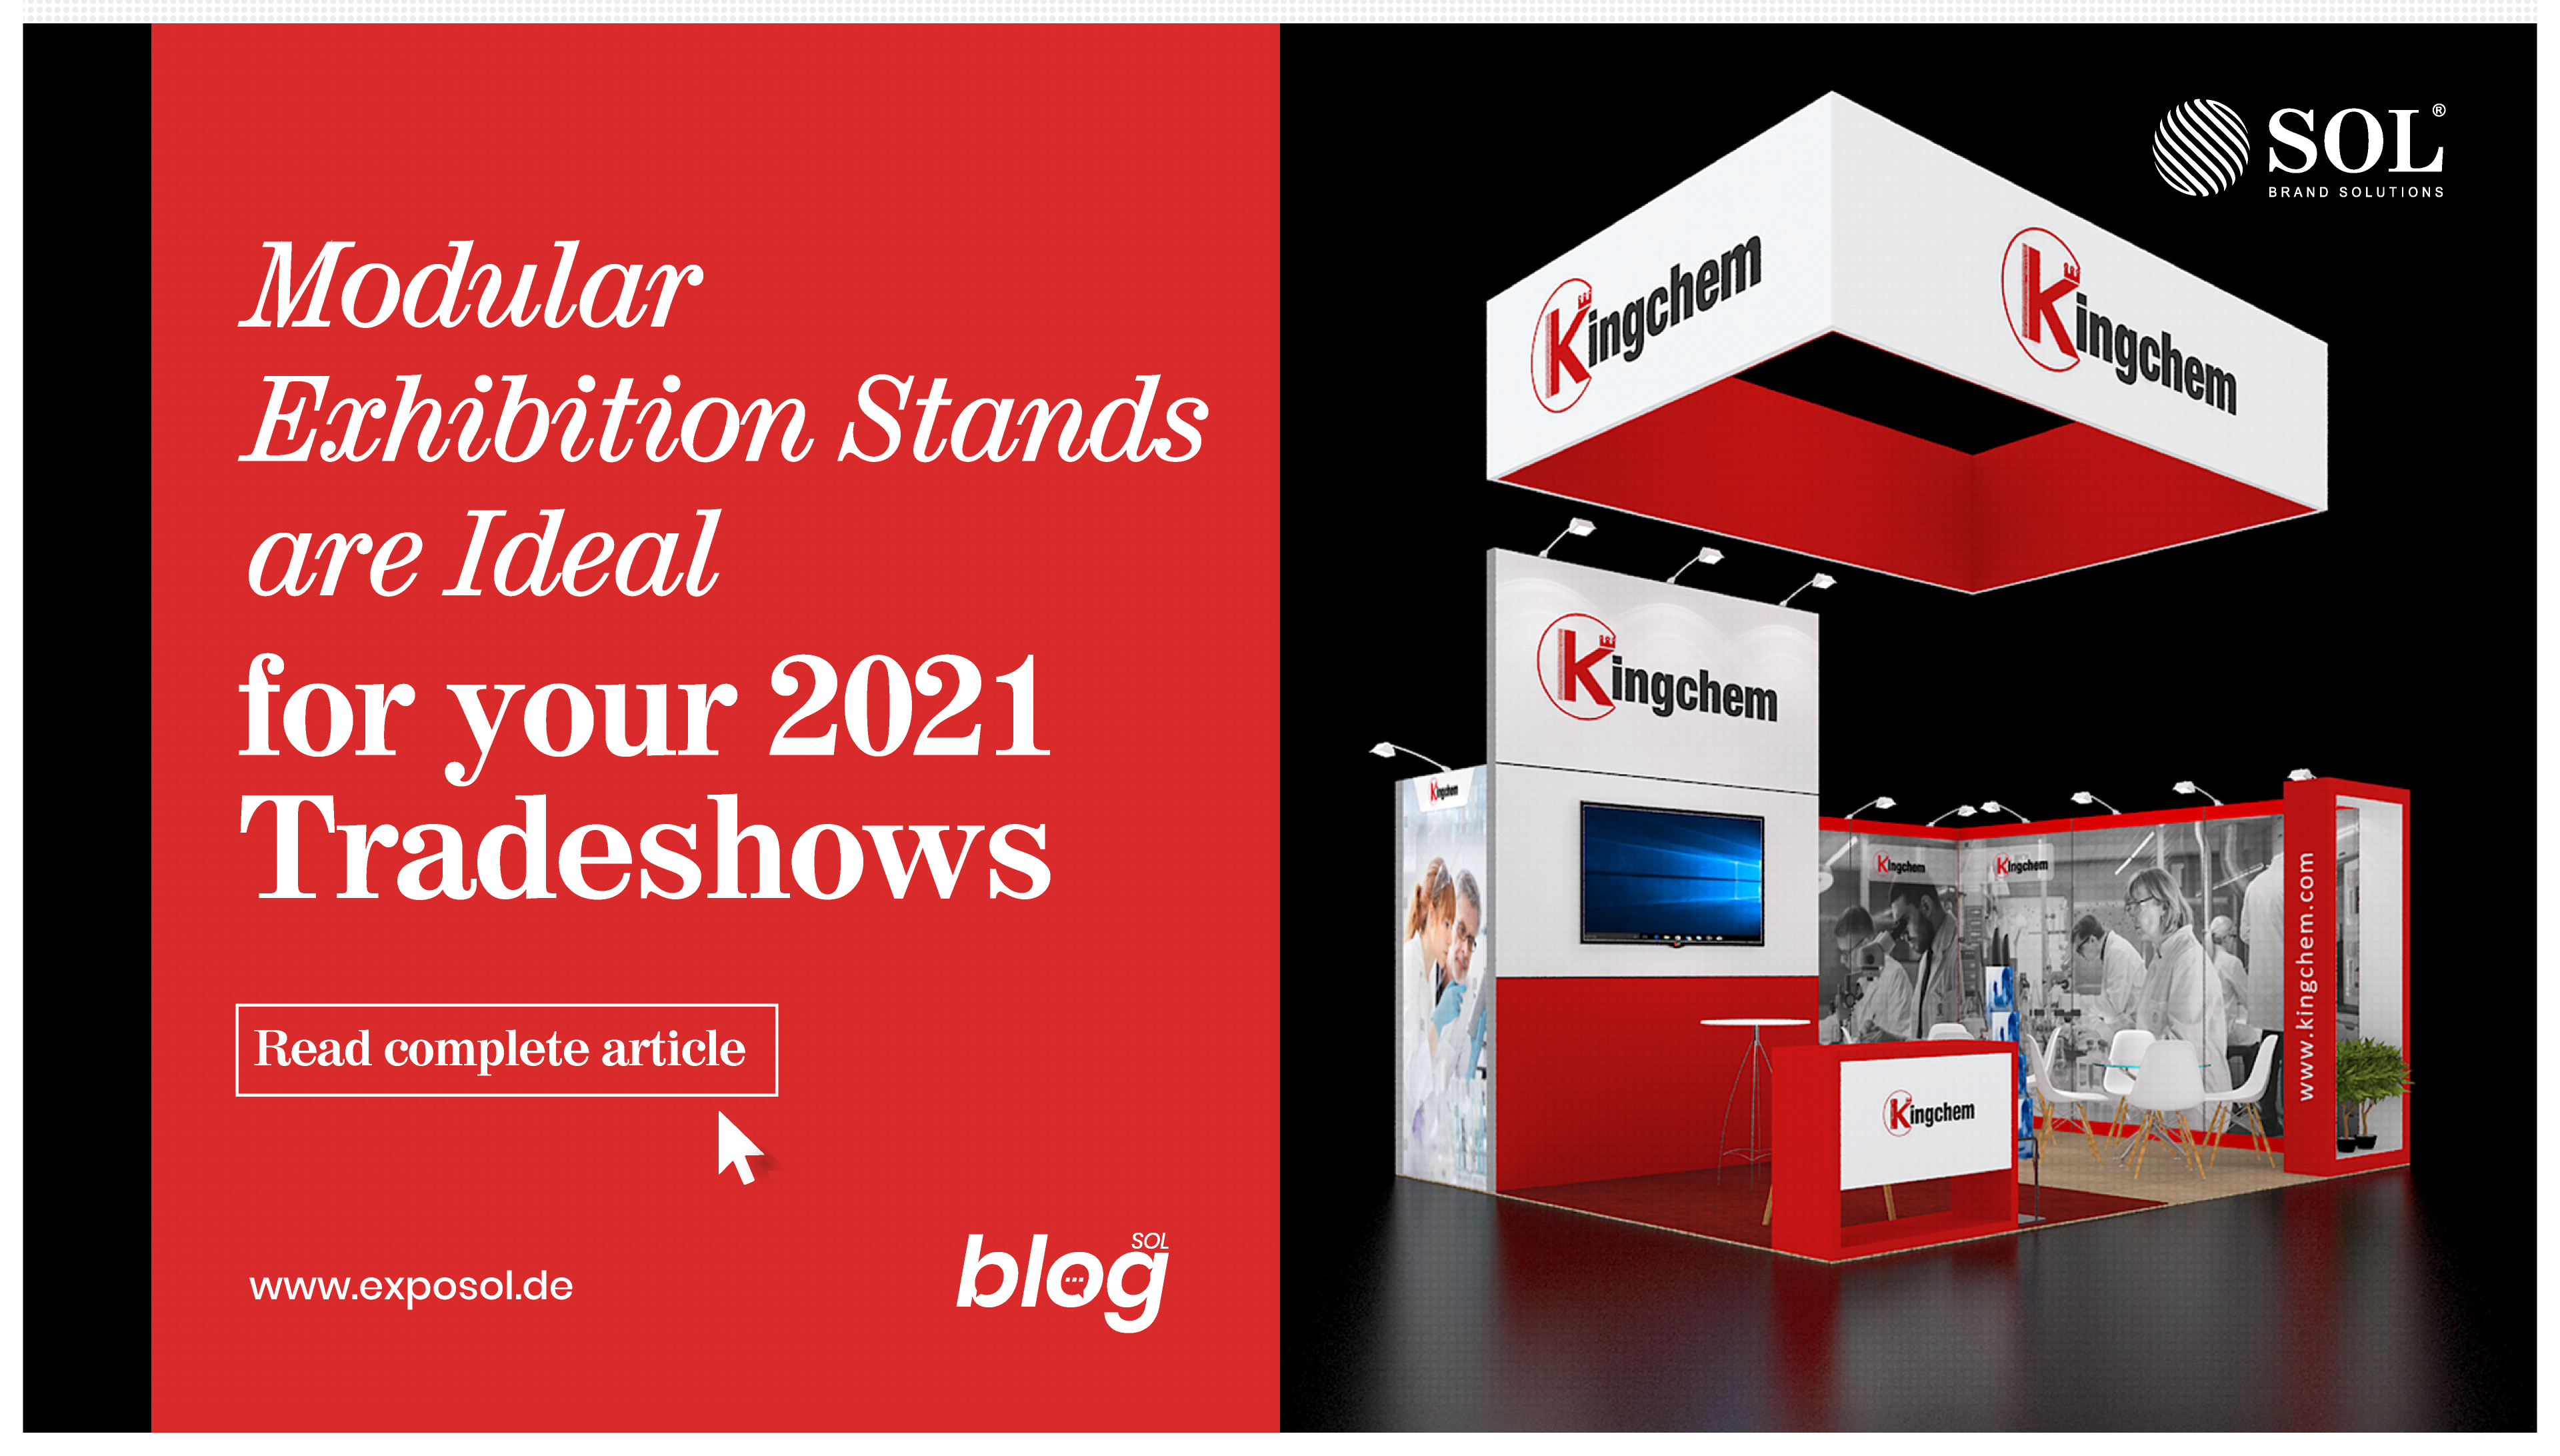 Why a Modular Exhibition Stand is Ideal for Your Exhibition in 2021